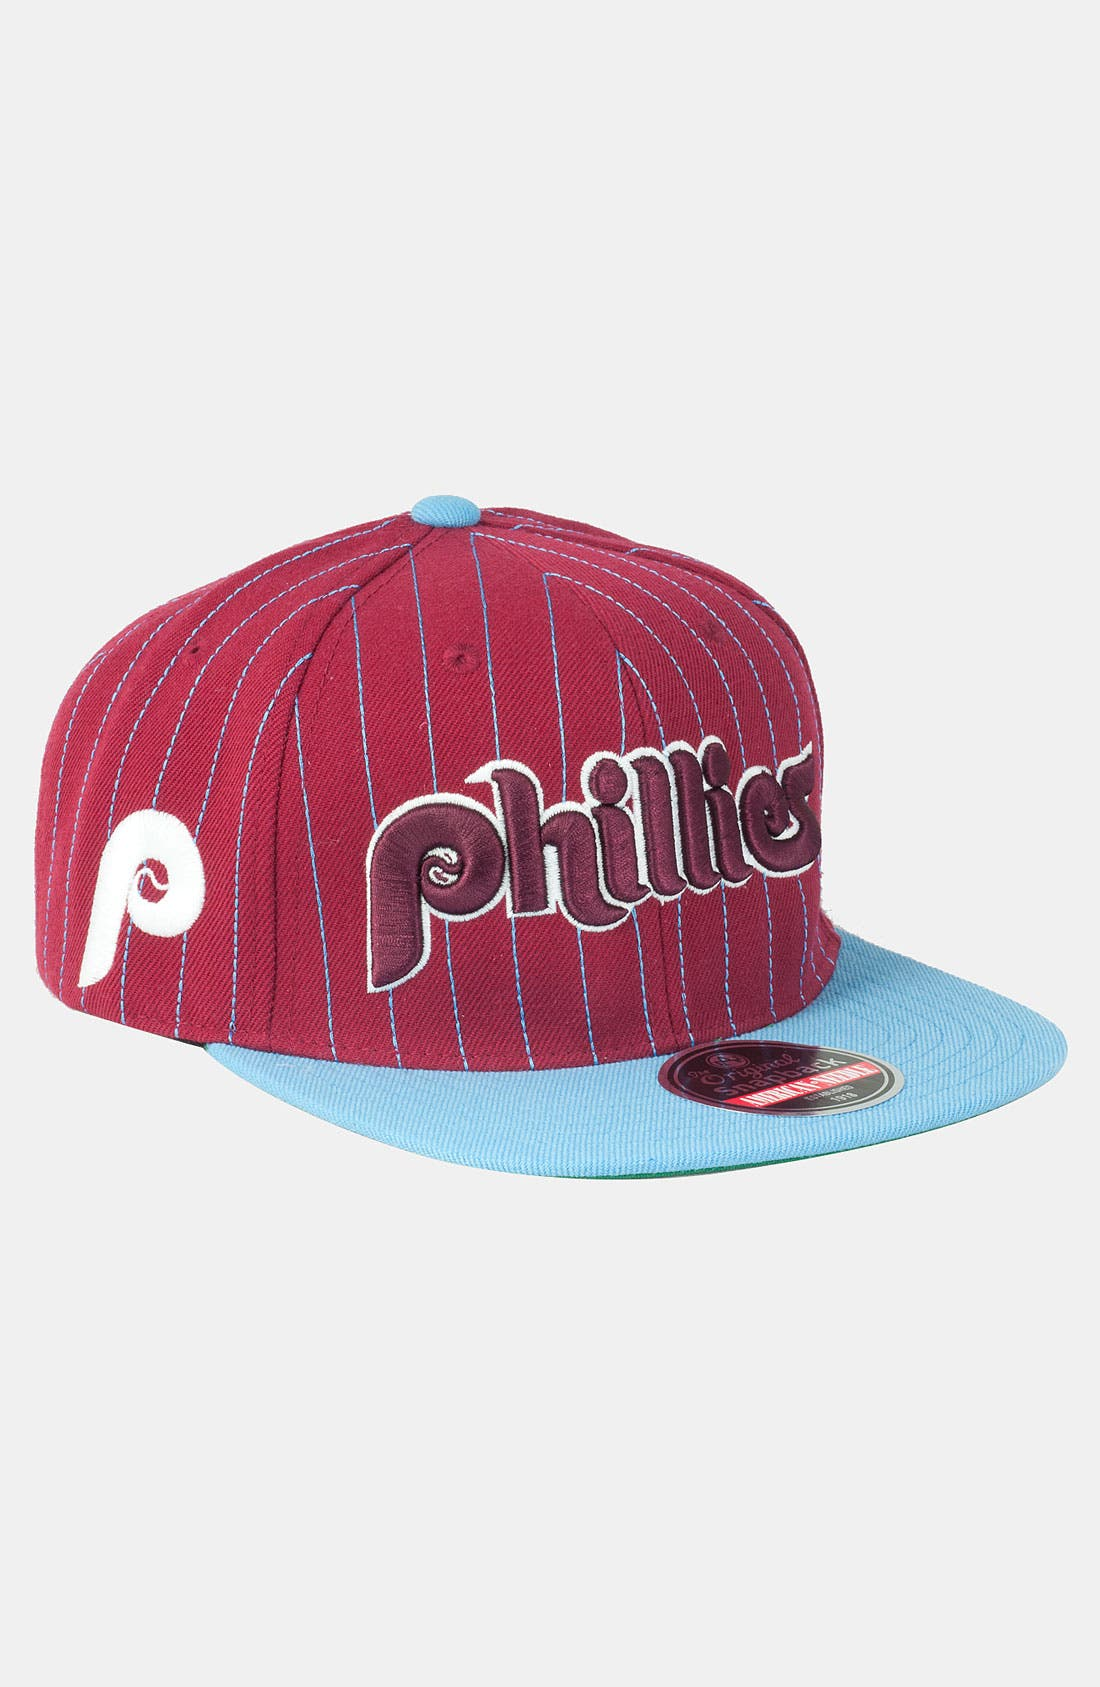 Main Image - American Needle 'Phillies' Snapback Baseball Cap